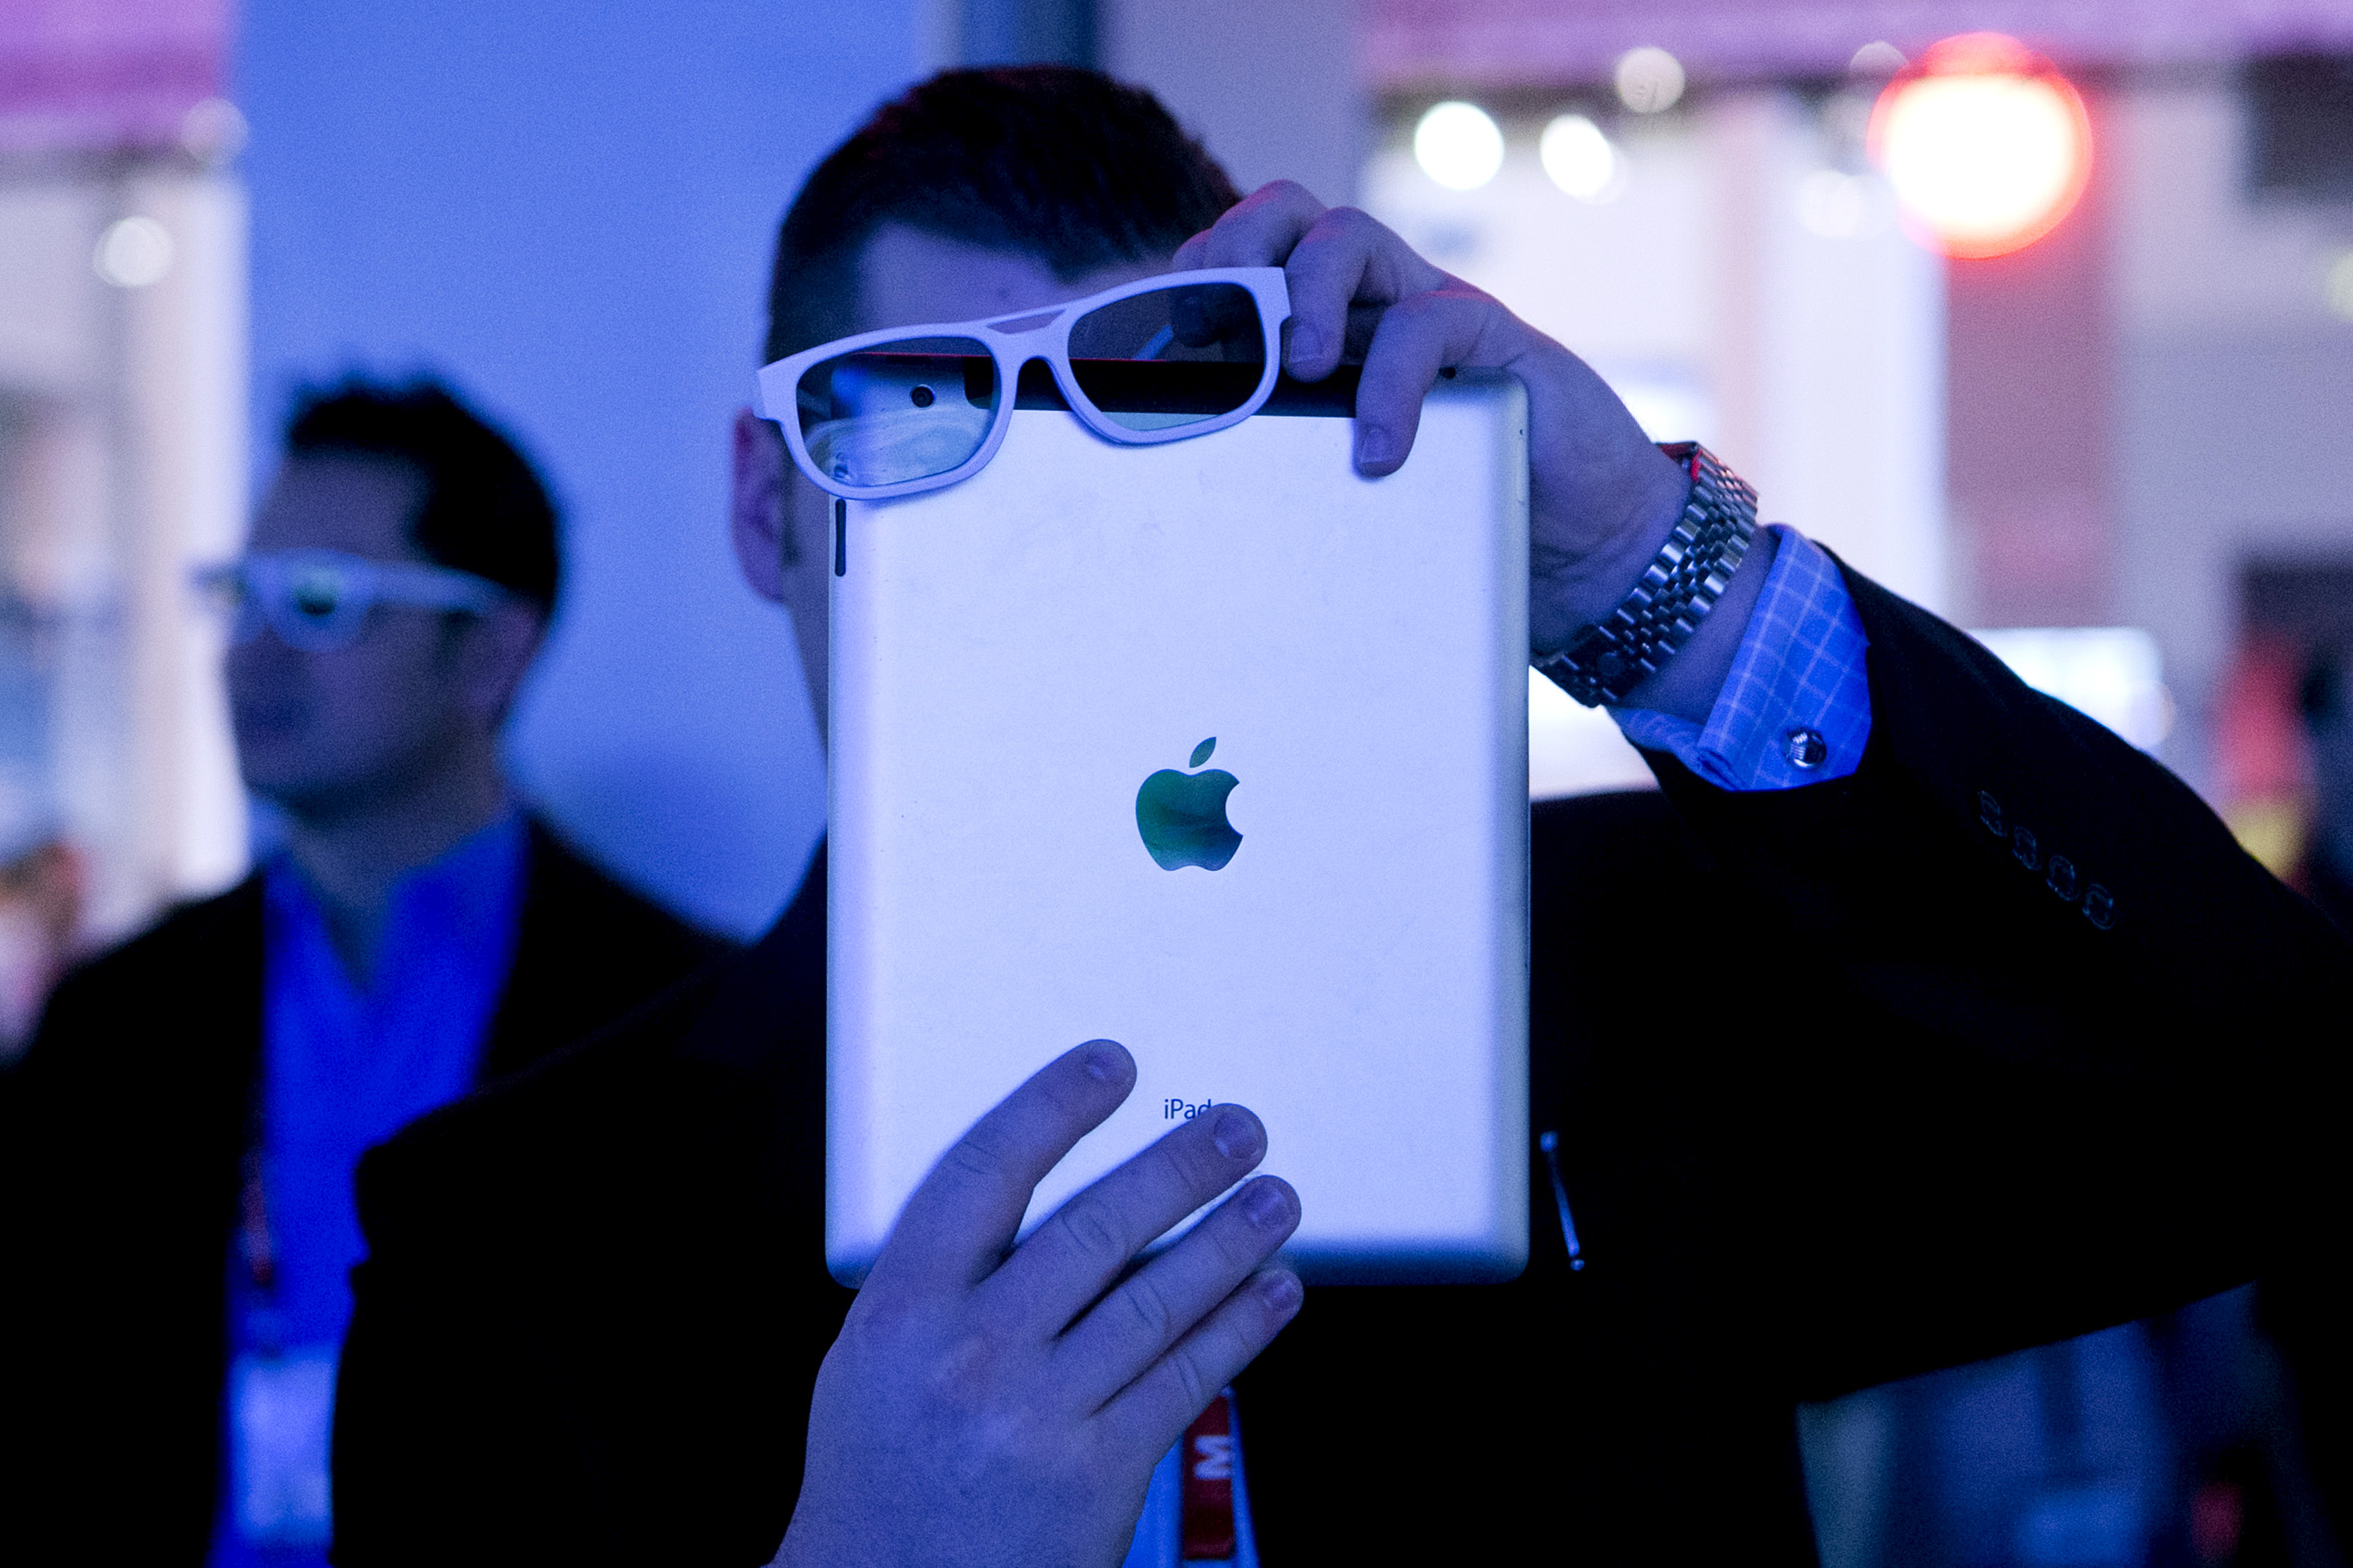 China said to exclude Apple from procurement list